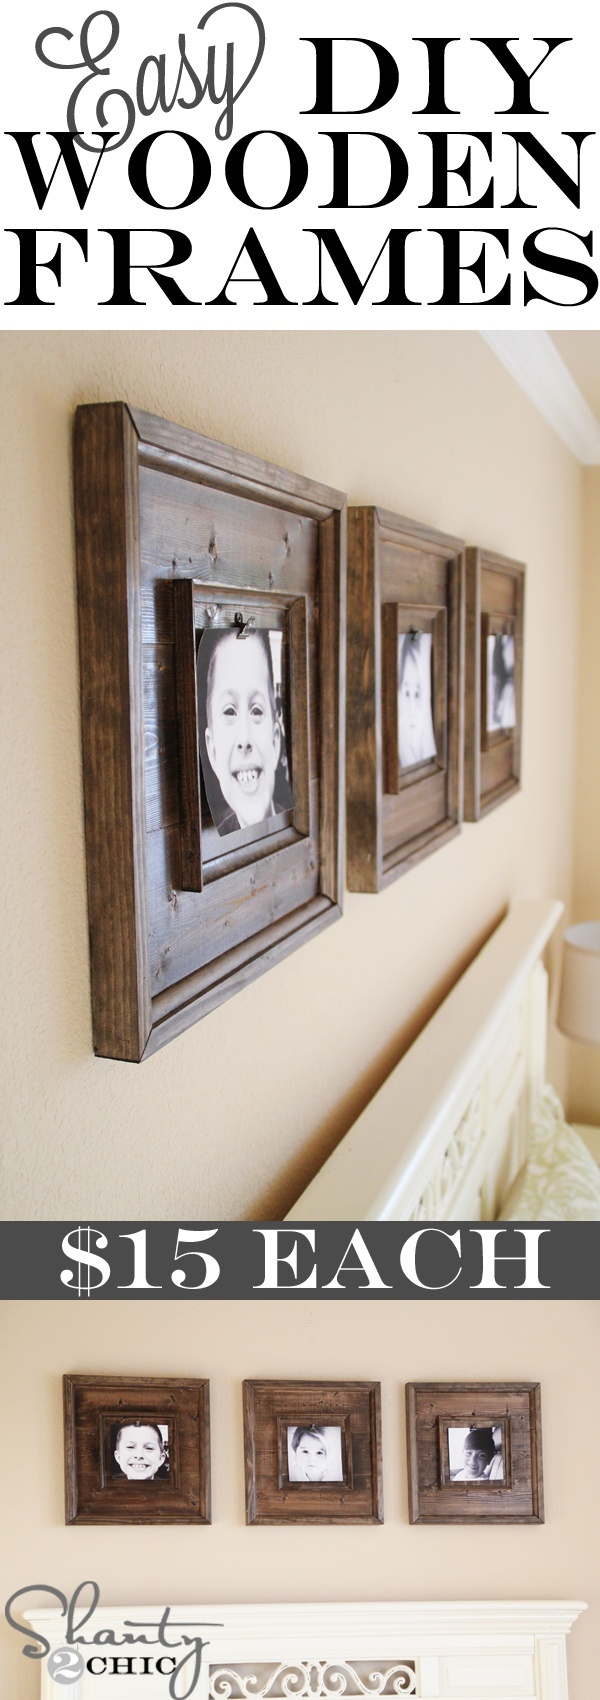 cheap and easy diy wooden frameslove this style hey hubby - Wooden Picture Frames Cheap